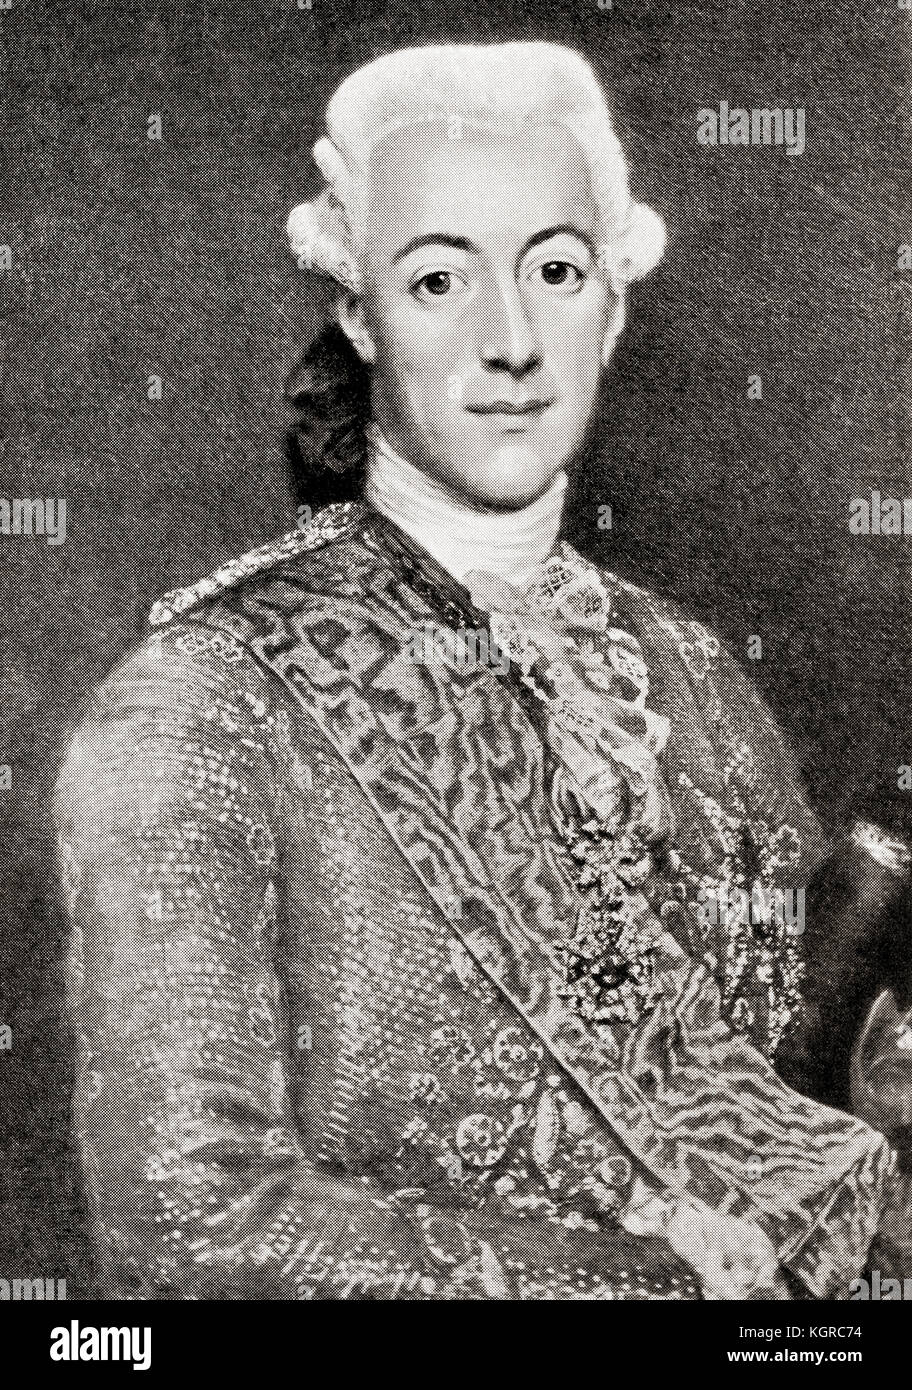 Gustav III, 1746 – 1792.  King of Sweden.  From Hutchinson's History of the Nations, published 1915. - Stock Image